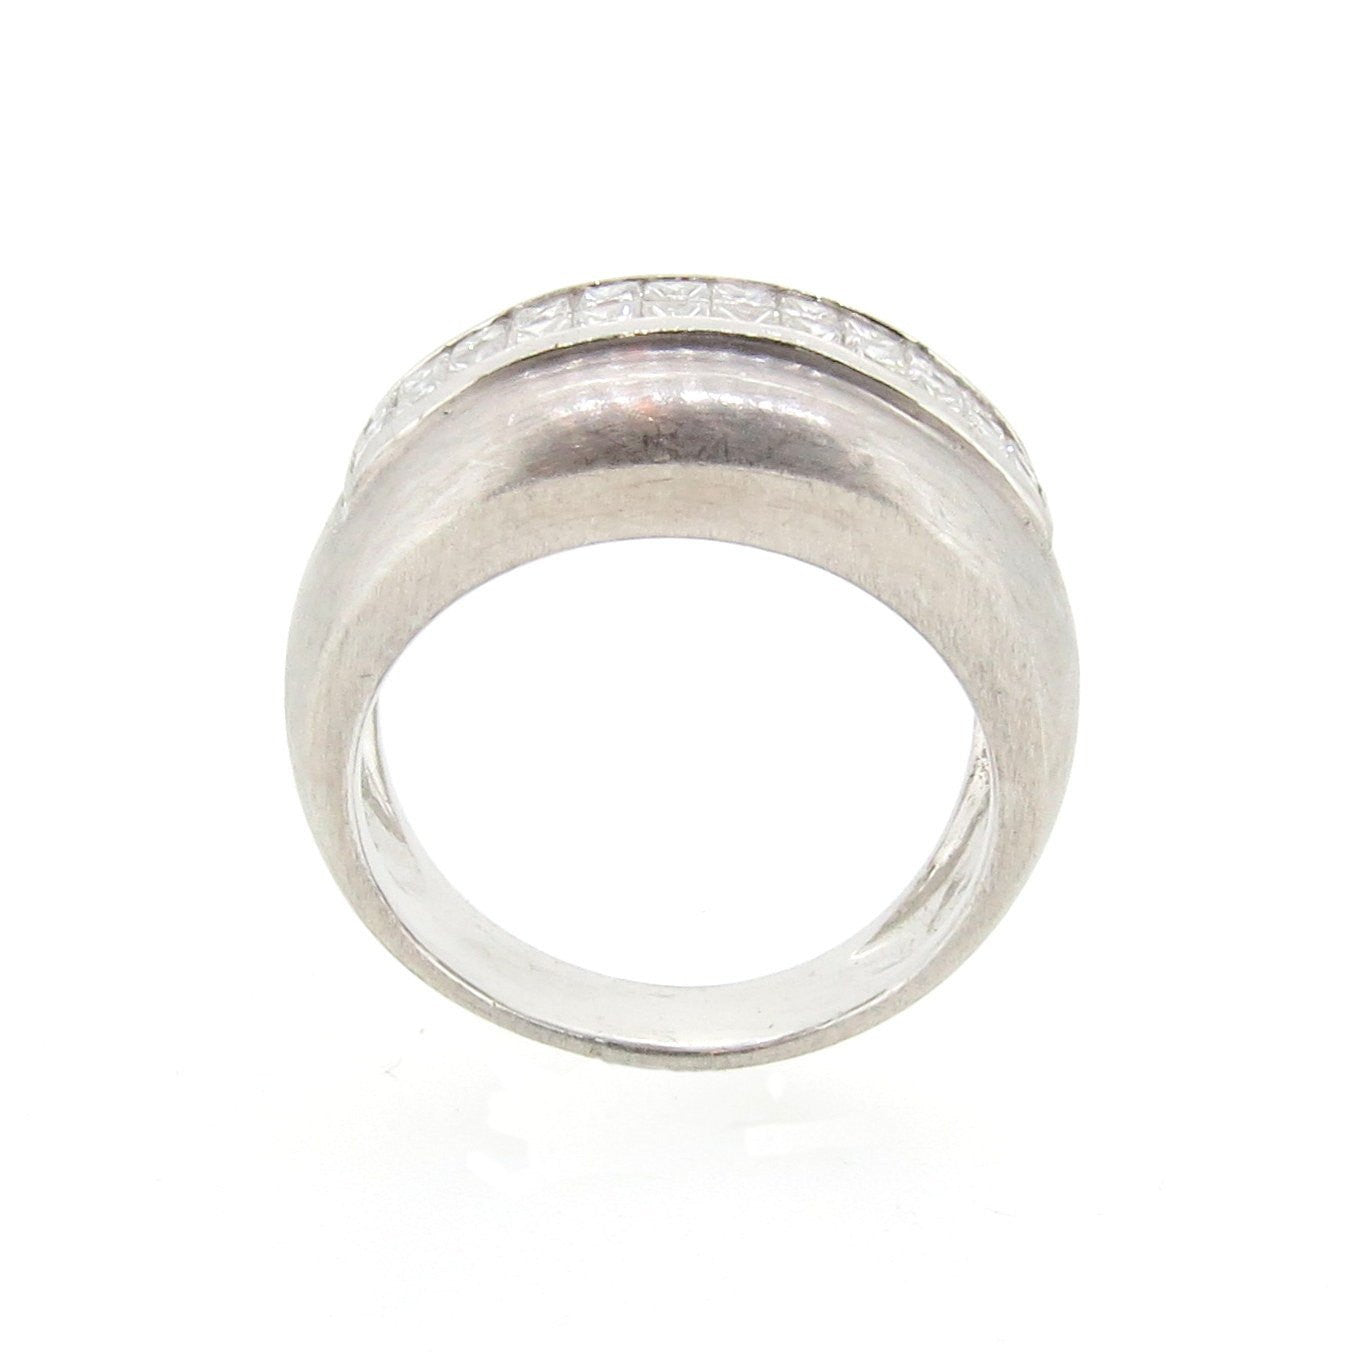 Wide Band, Diamond Wedding Band, Anniversary Ring, Cocktail Ring